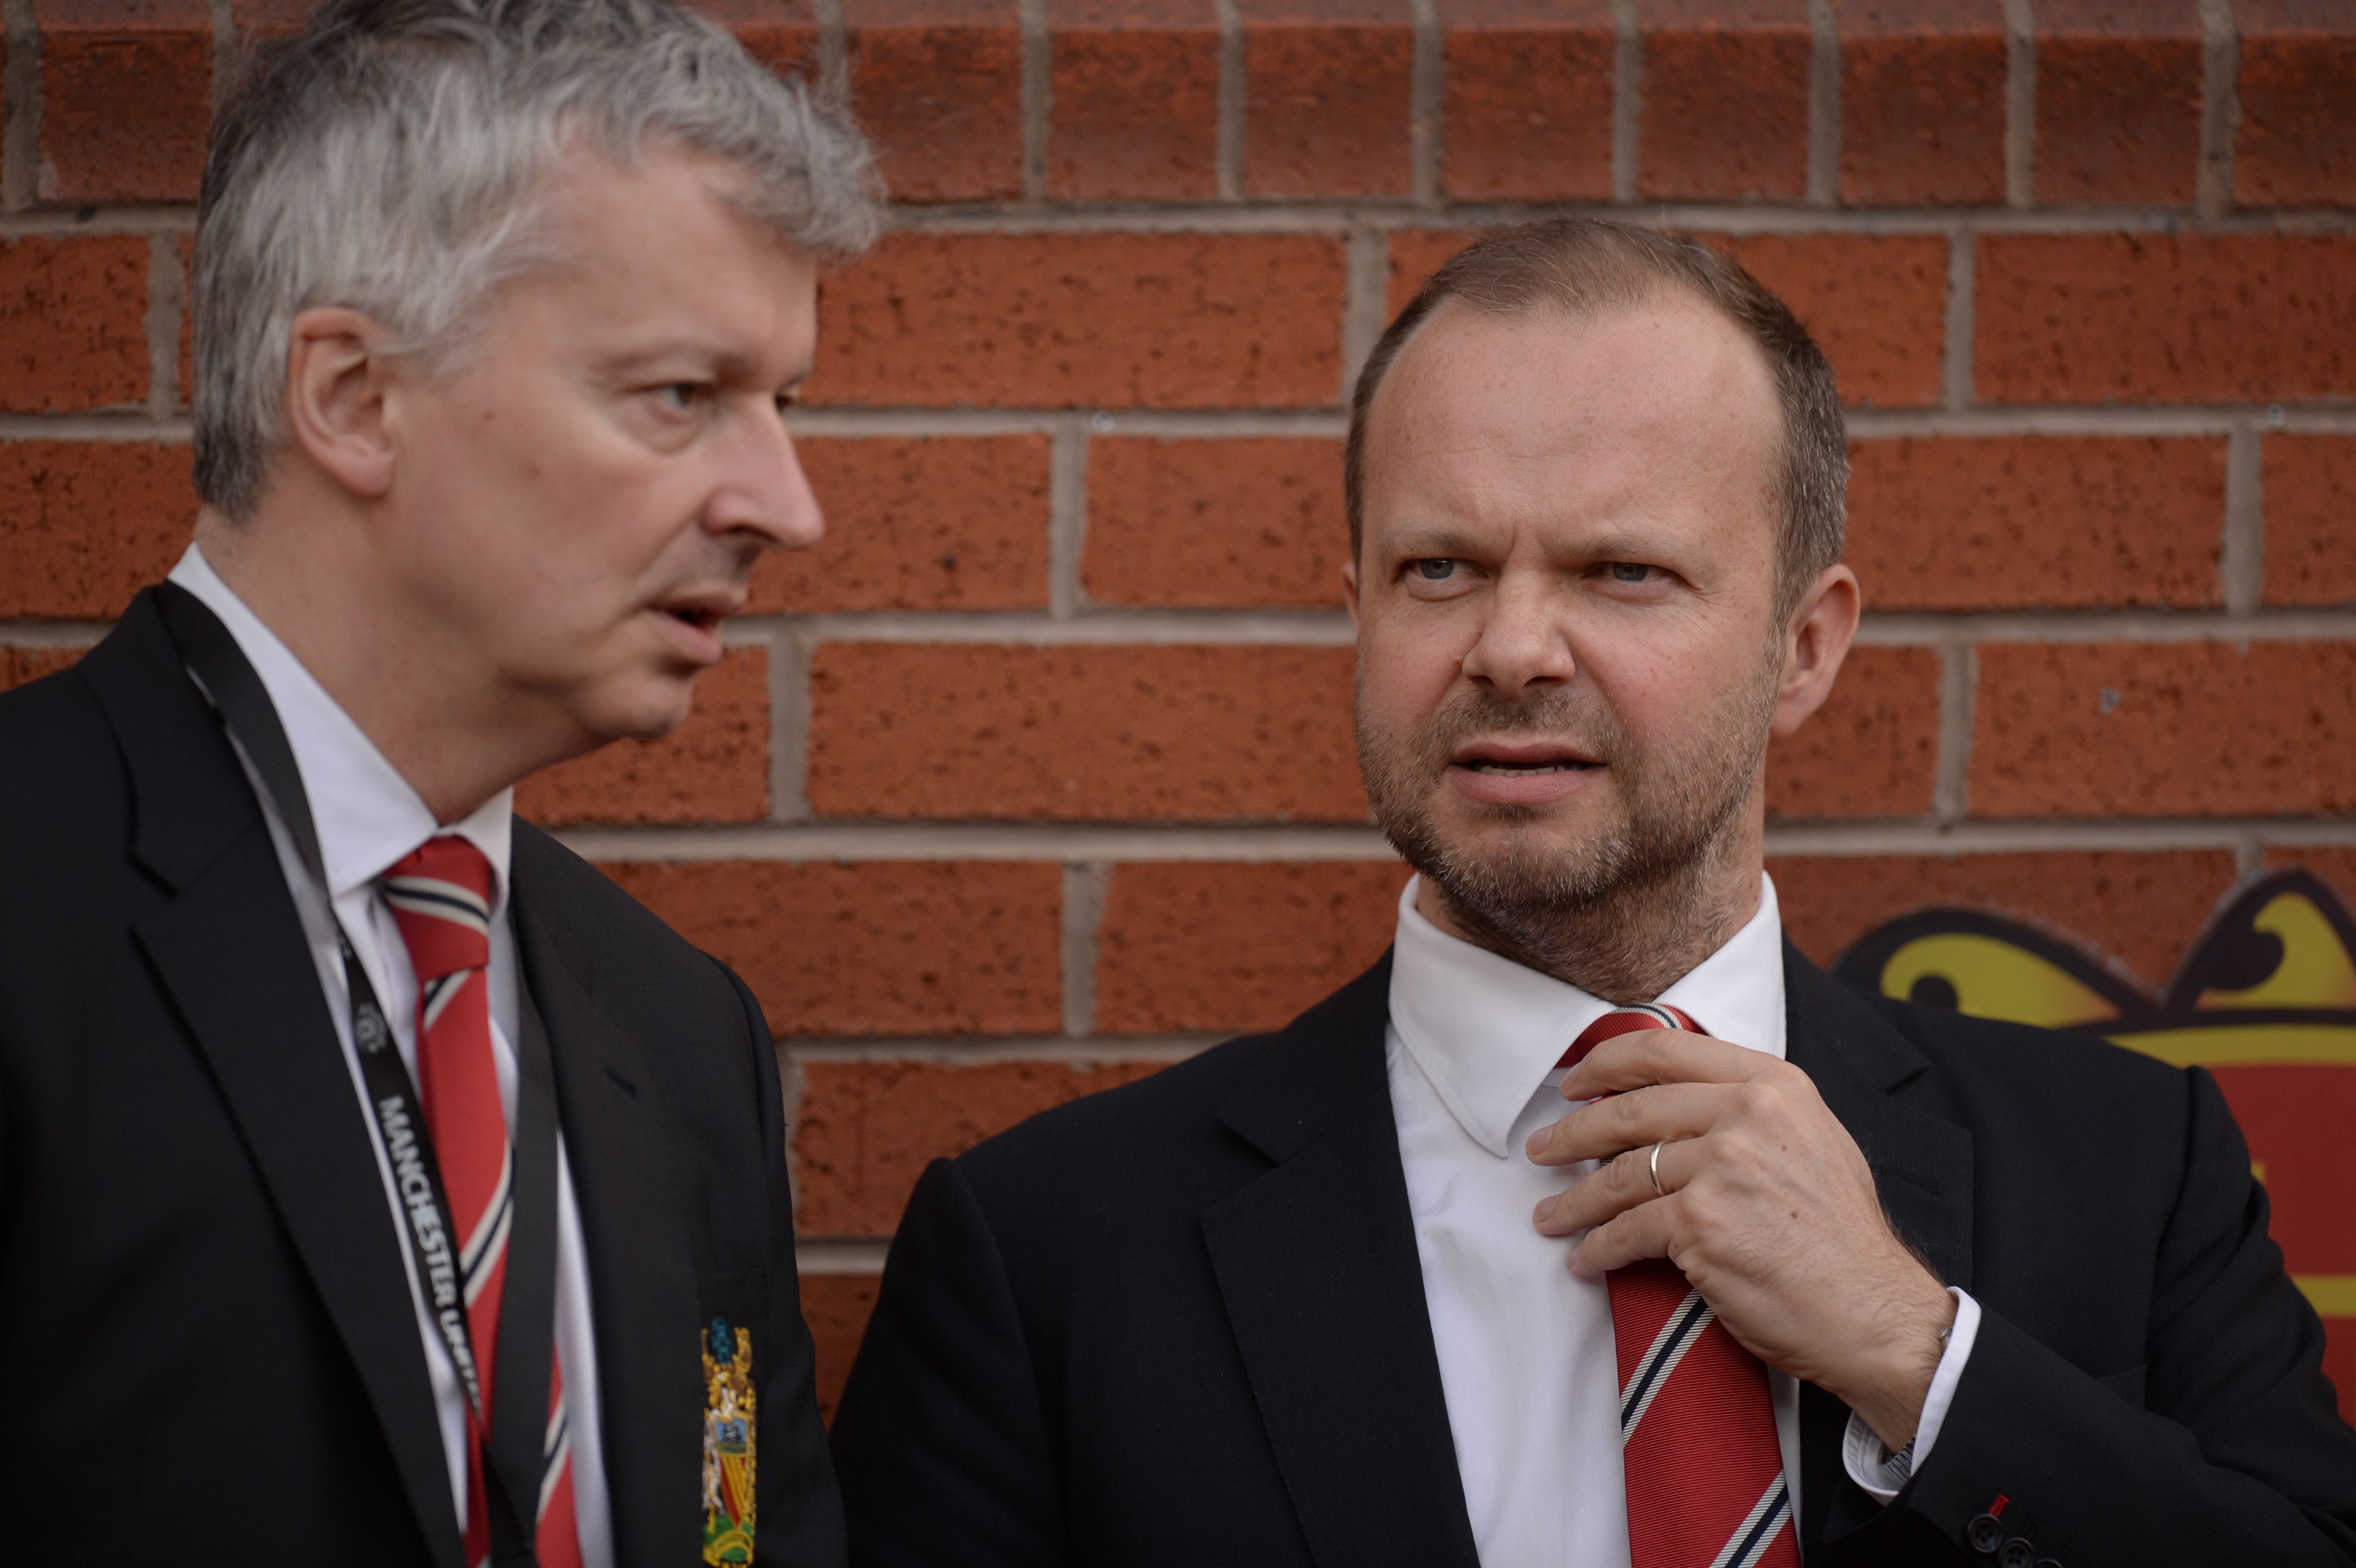 Jose Mourinho's agent Jorge Mendes set to meet Ed Woodward this week to confirm Manchester United arrival